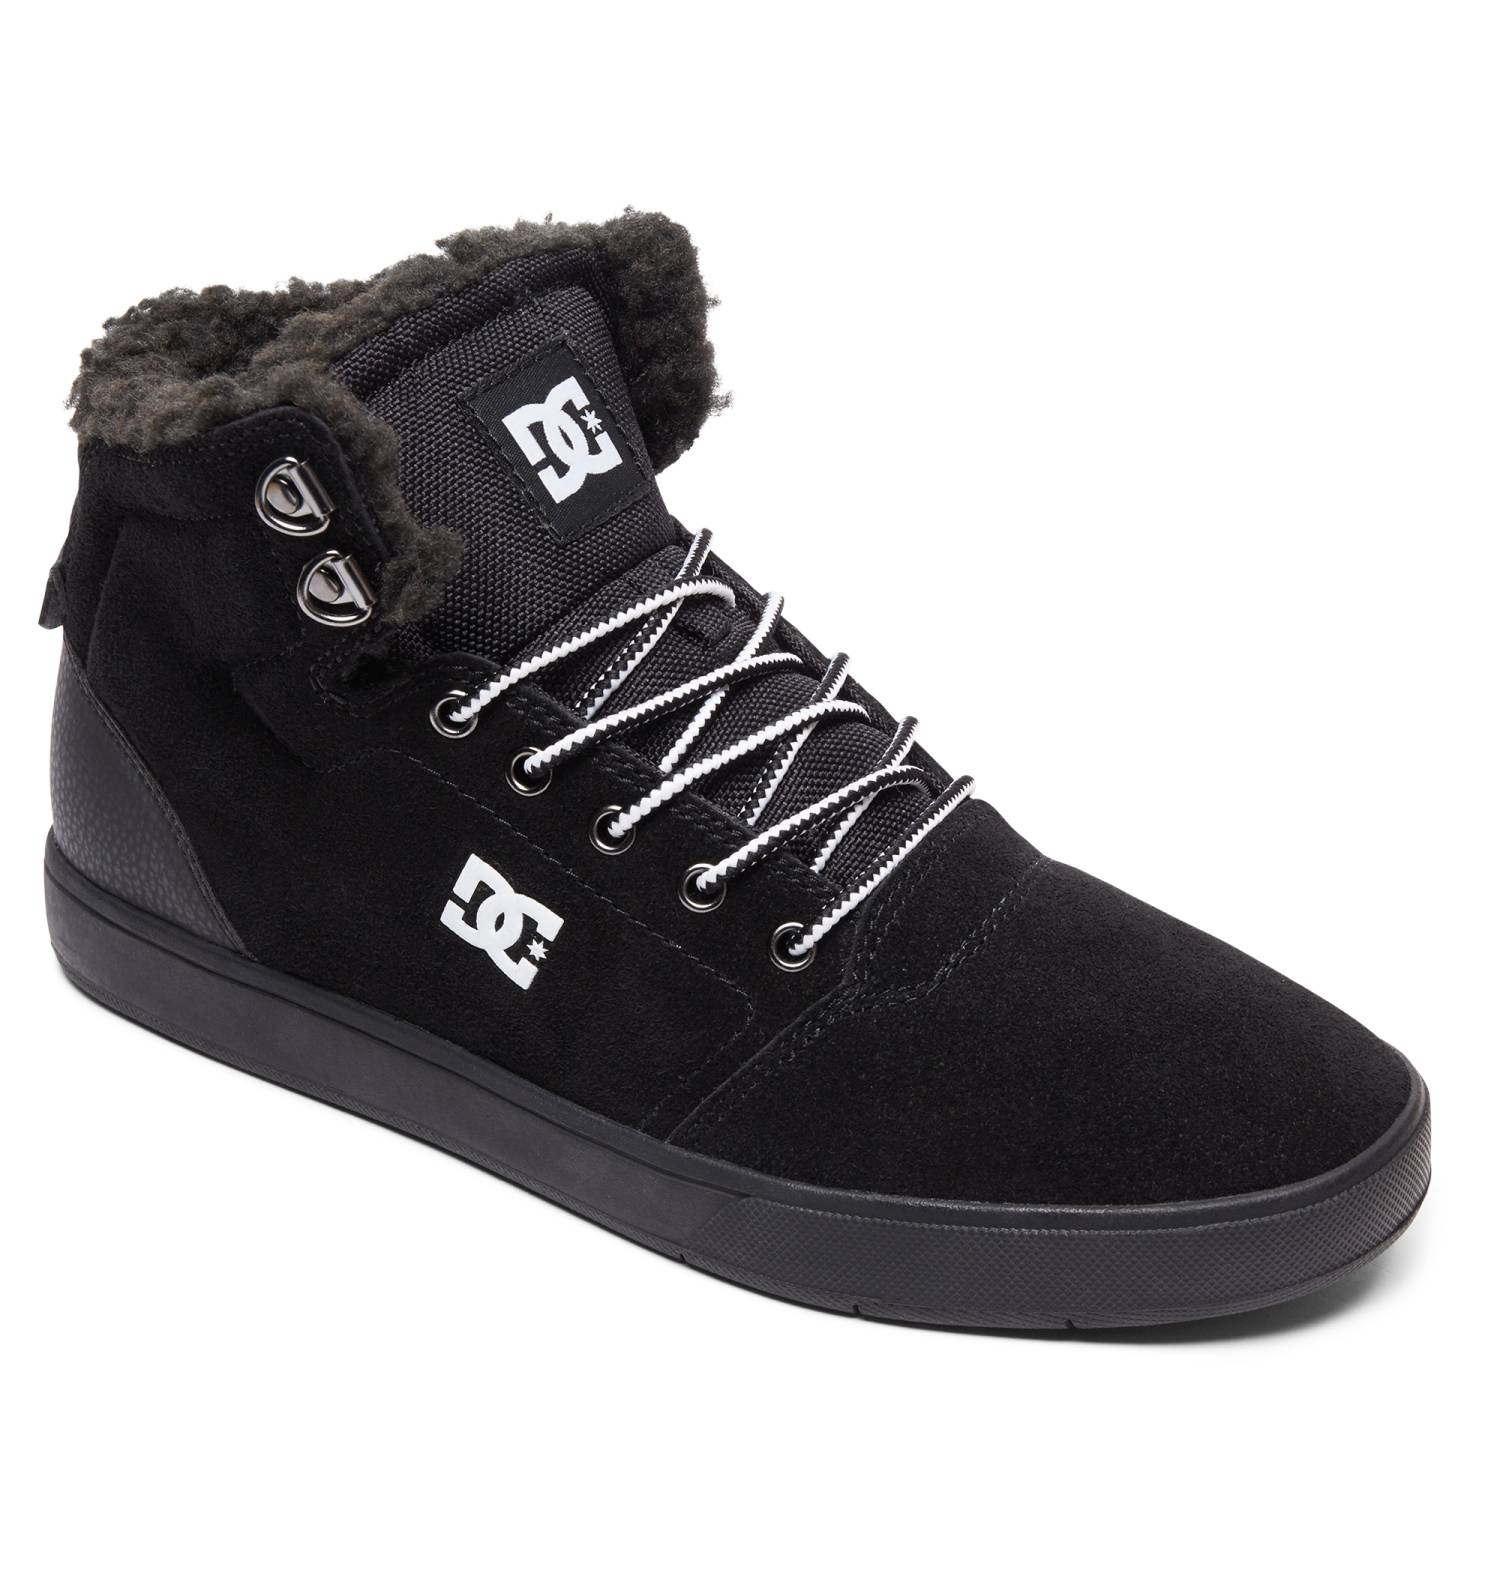 DC Shoes Crisis High Winter schwarz Black White Black Hi Sneaker Chukka Herren